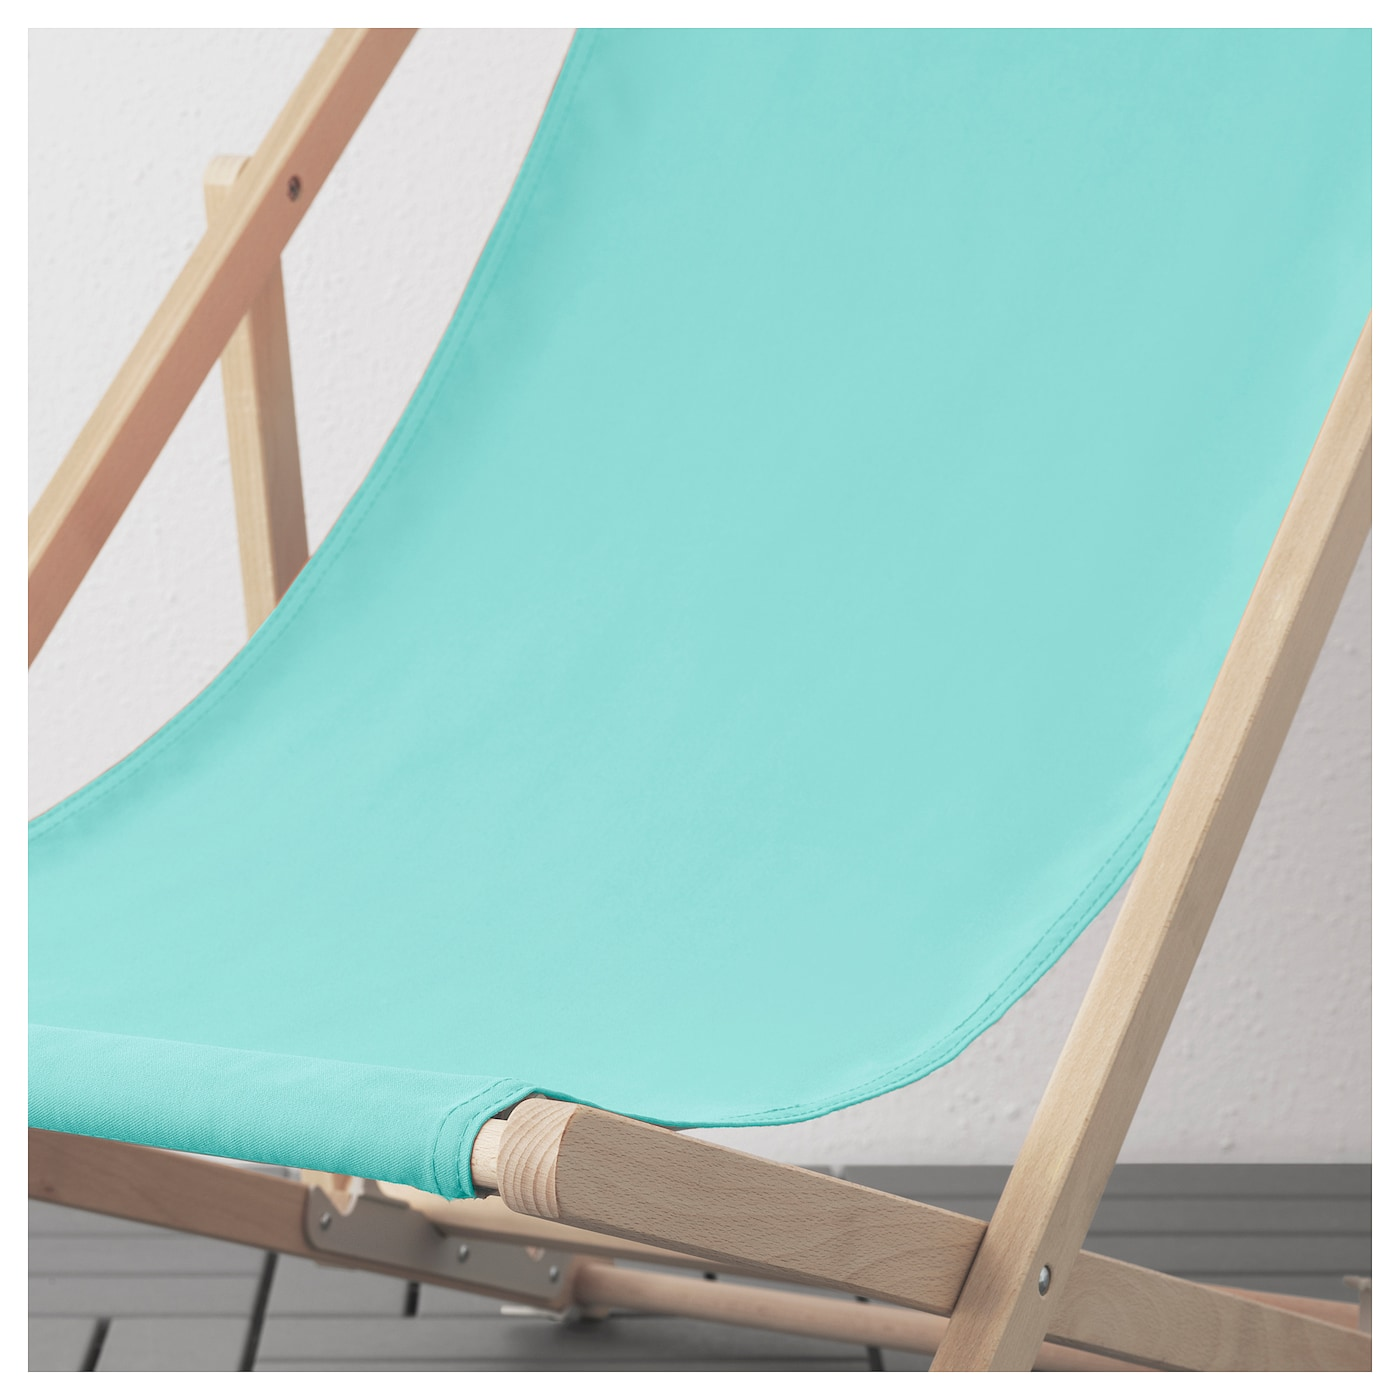 Mysings chaise de plage turquoise ikea for Chaise de plage